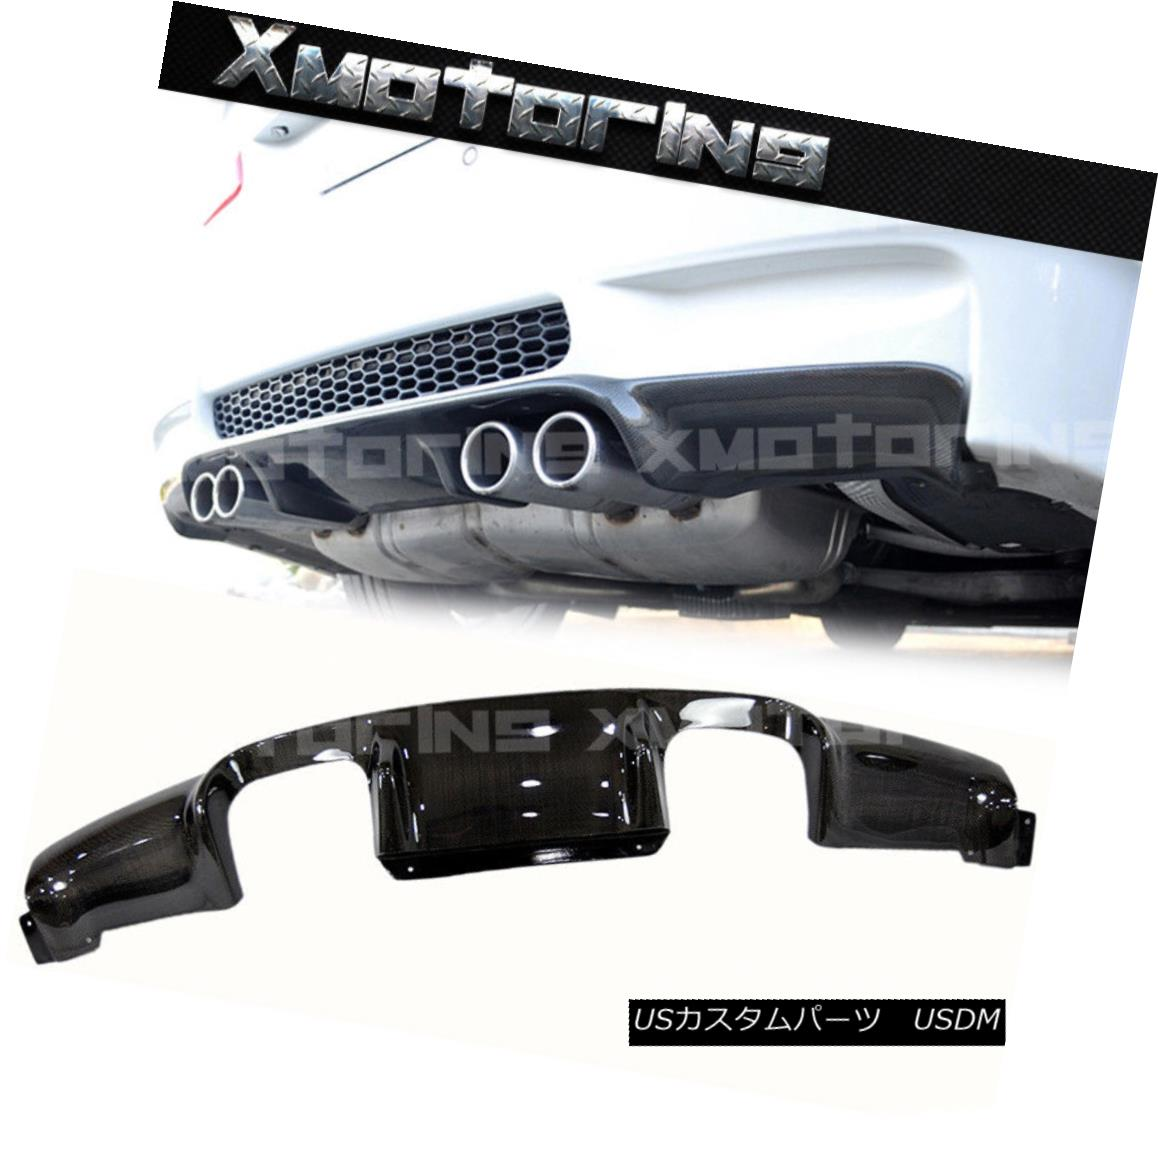 エアロパーツ 3D Type Carbon Fiber Rear Bumper Diffuser For 2008-2013 BMW E93 E92 M3 Coupe 2DR 3Dタイプ炭素繊維リアバンパーディフューザーfor 2008-2013 BMW E93 E92 M3クーペ2DR